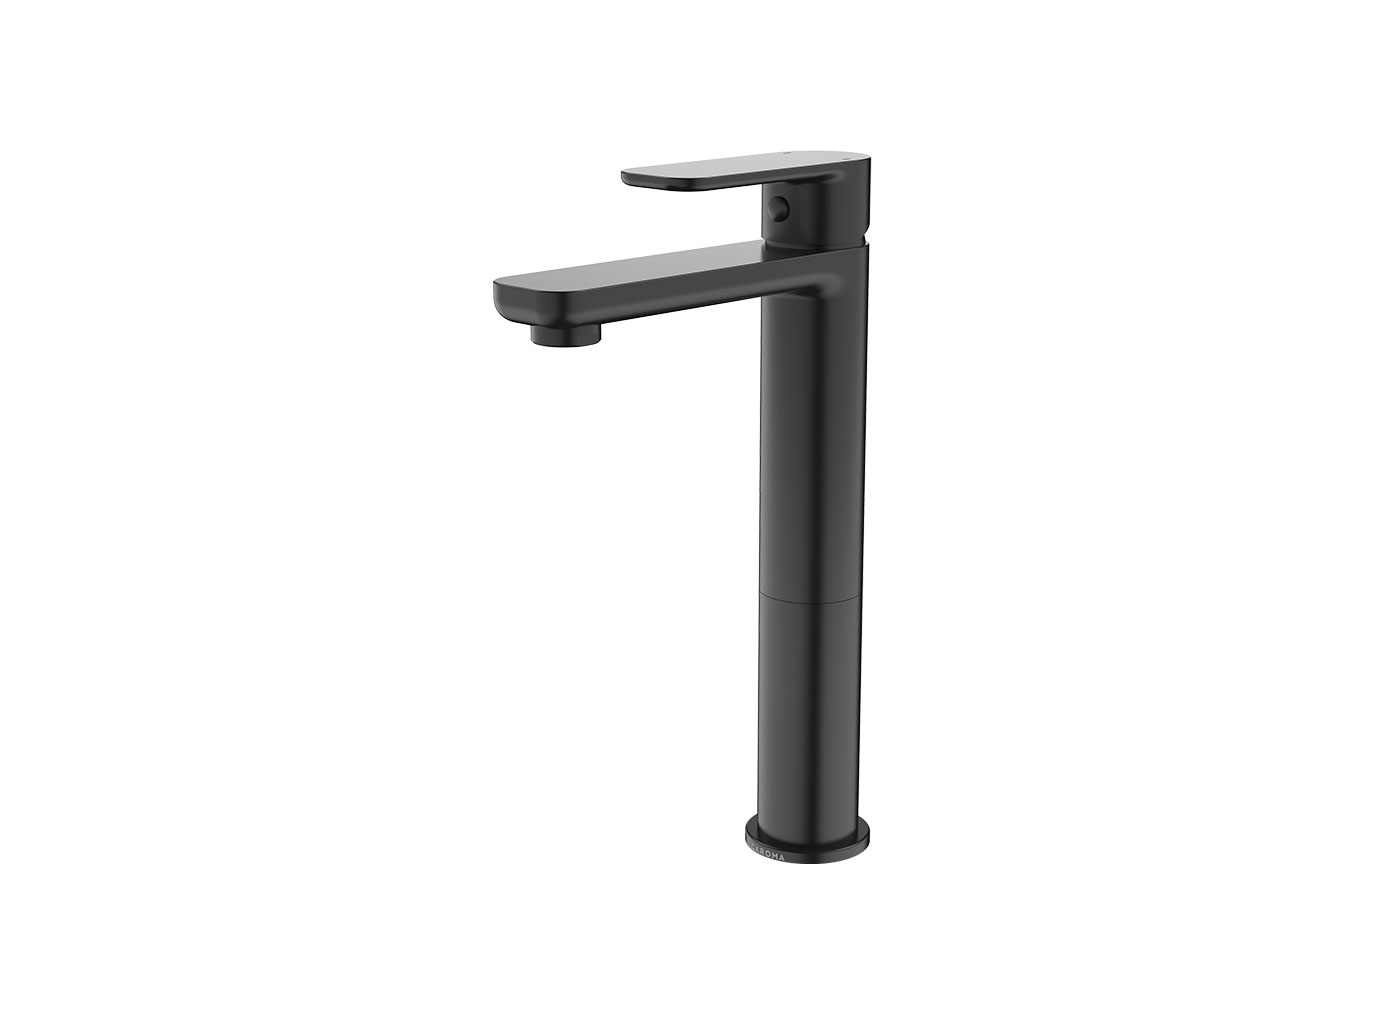 The Luna collection offers timeless and enduring bathroom essentials that are well-designed with Australian ingenuity to suit your lifestyle. The extensive product range features soft curves and sleek